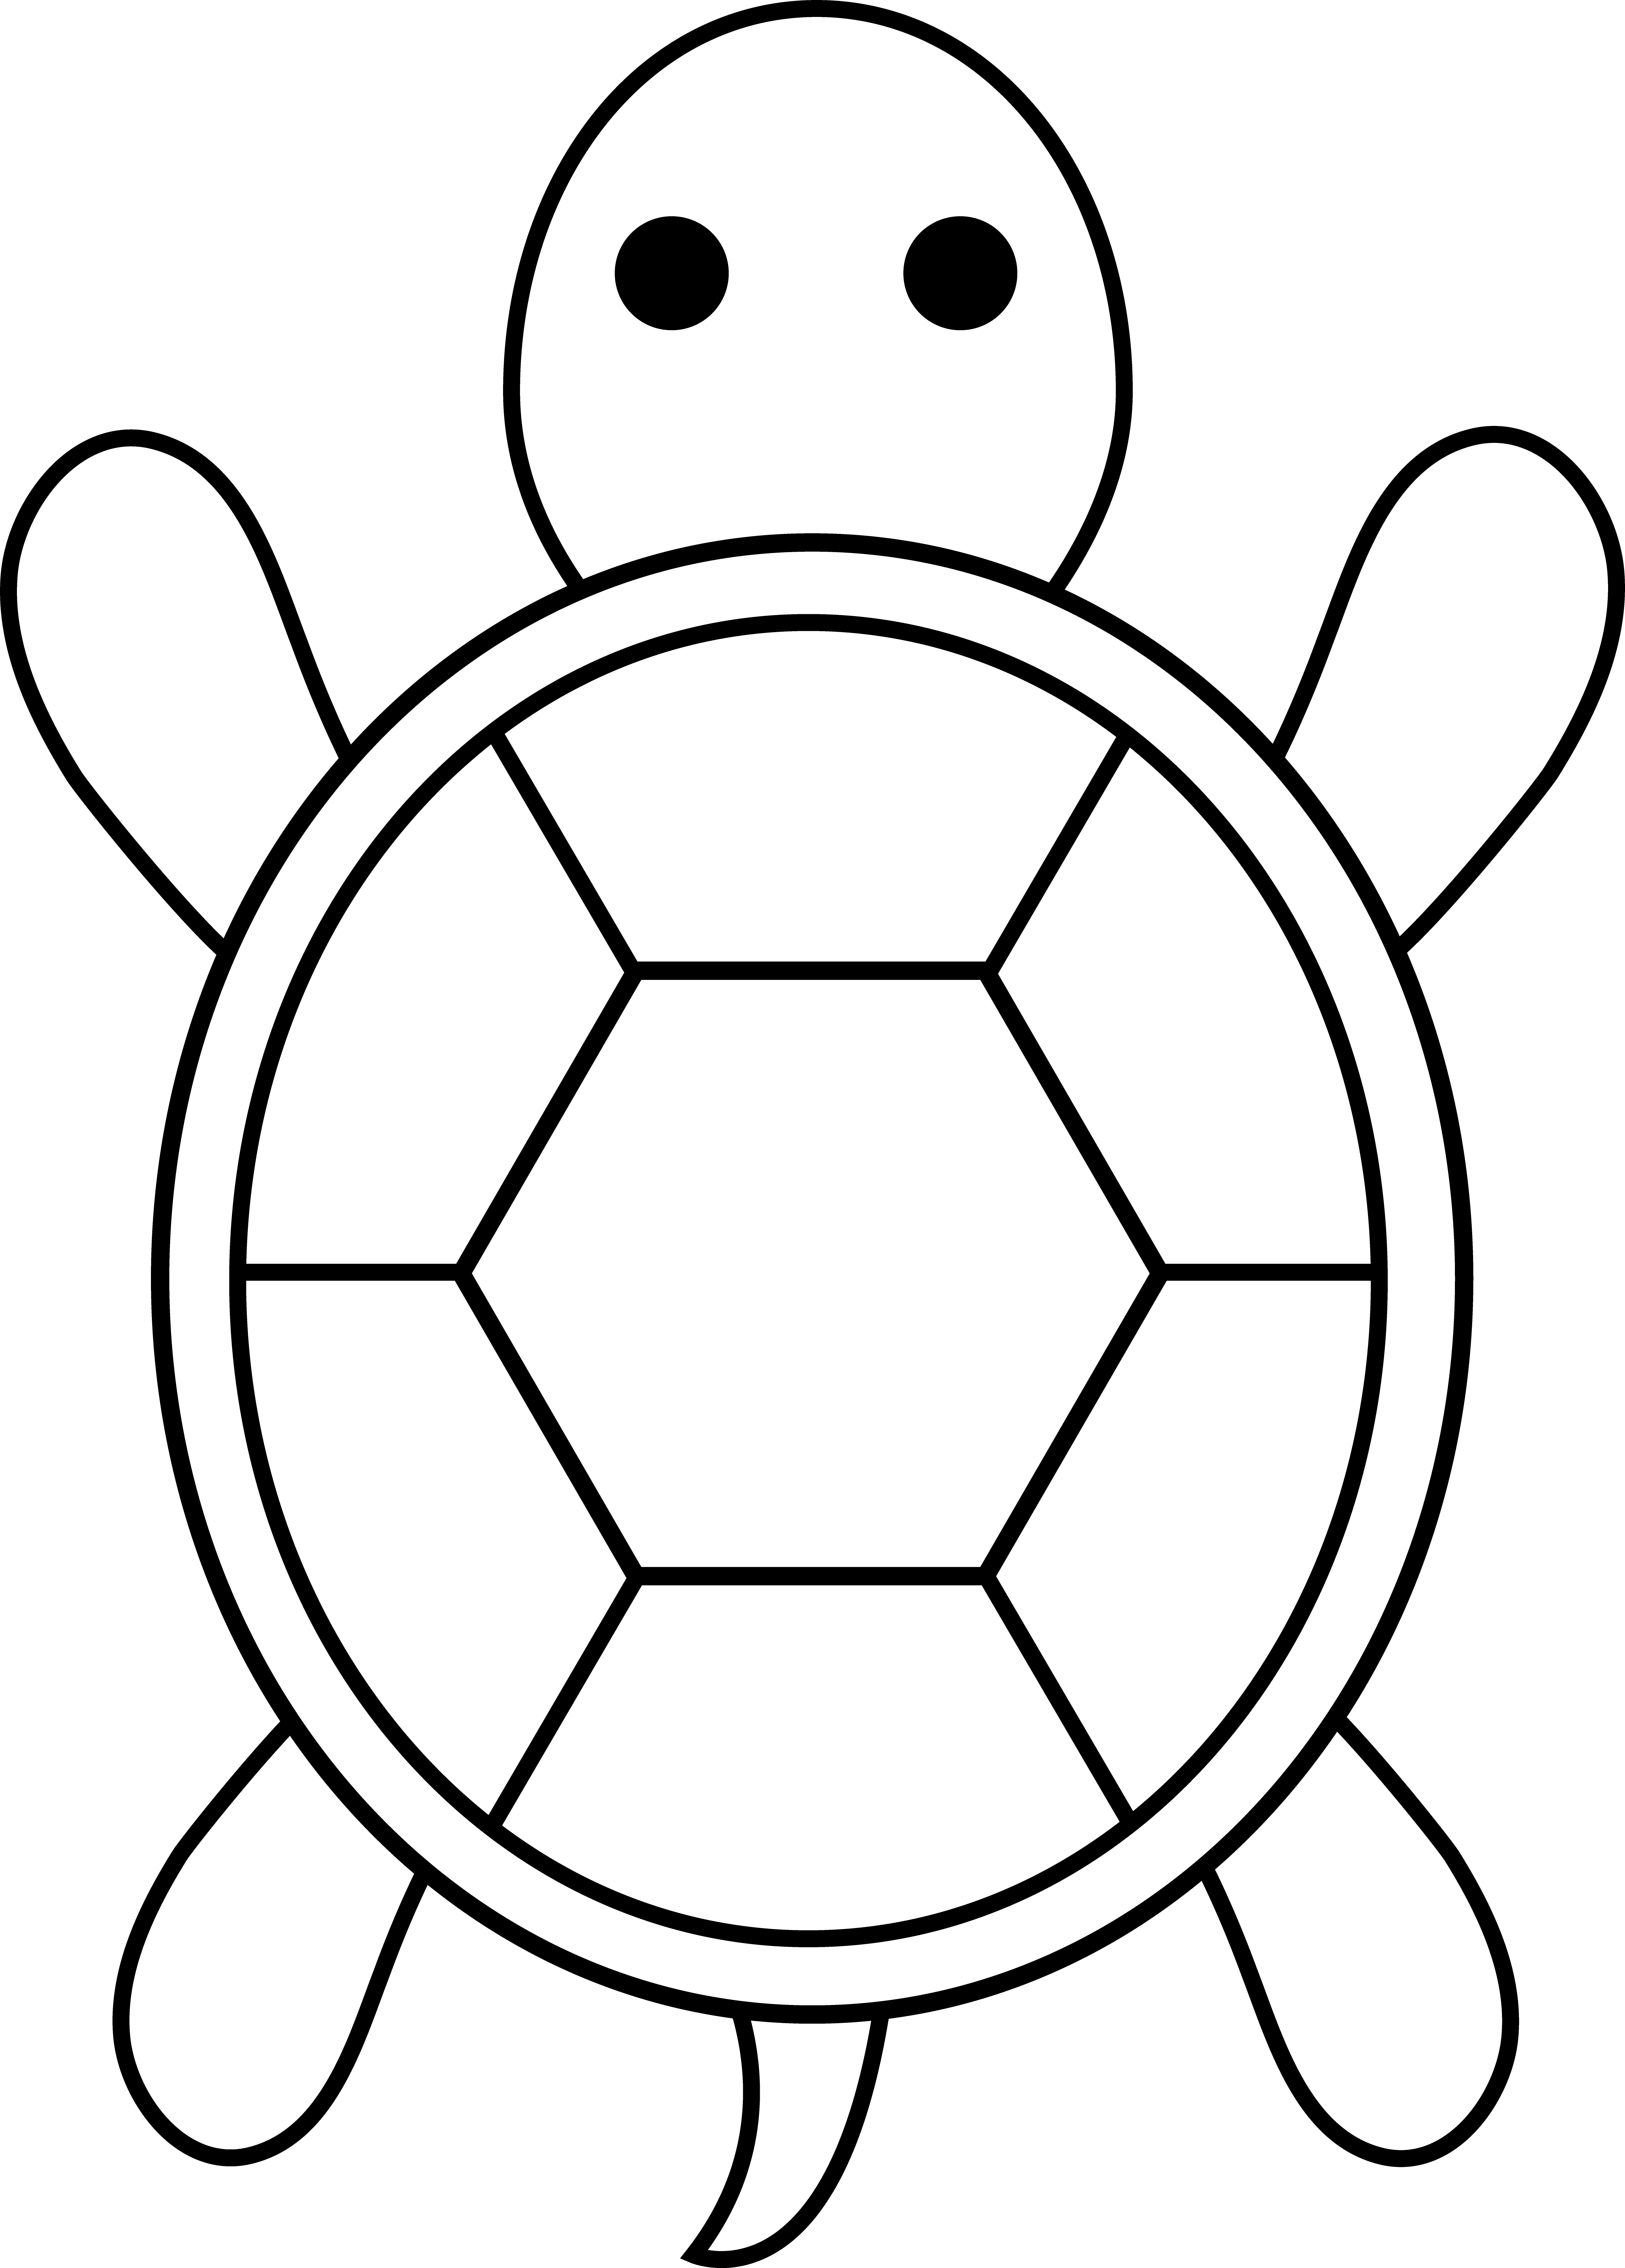 easy turtle outline templates pinterest turtle patterns and